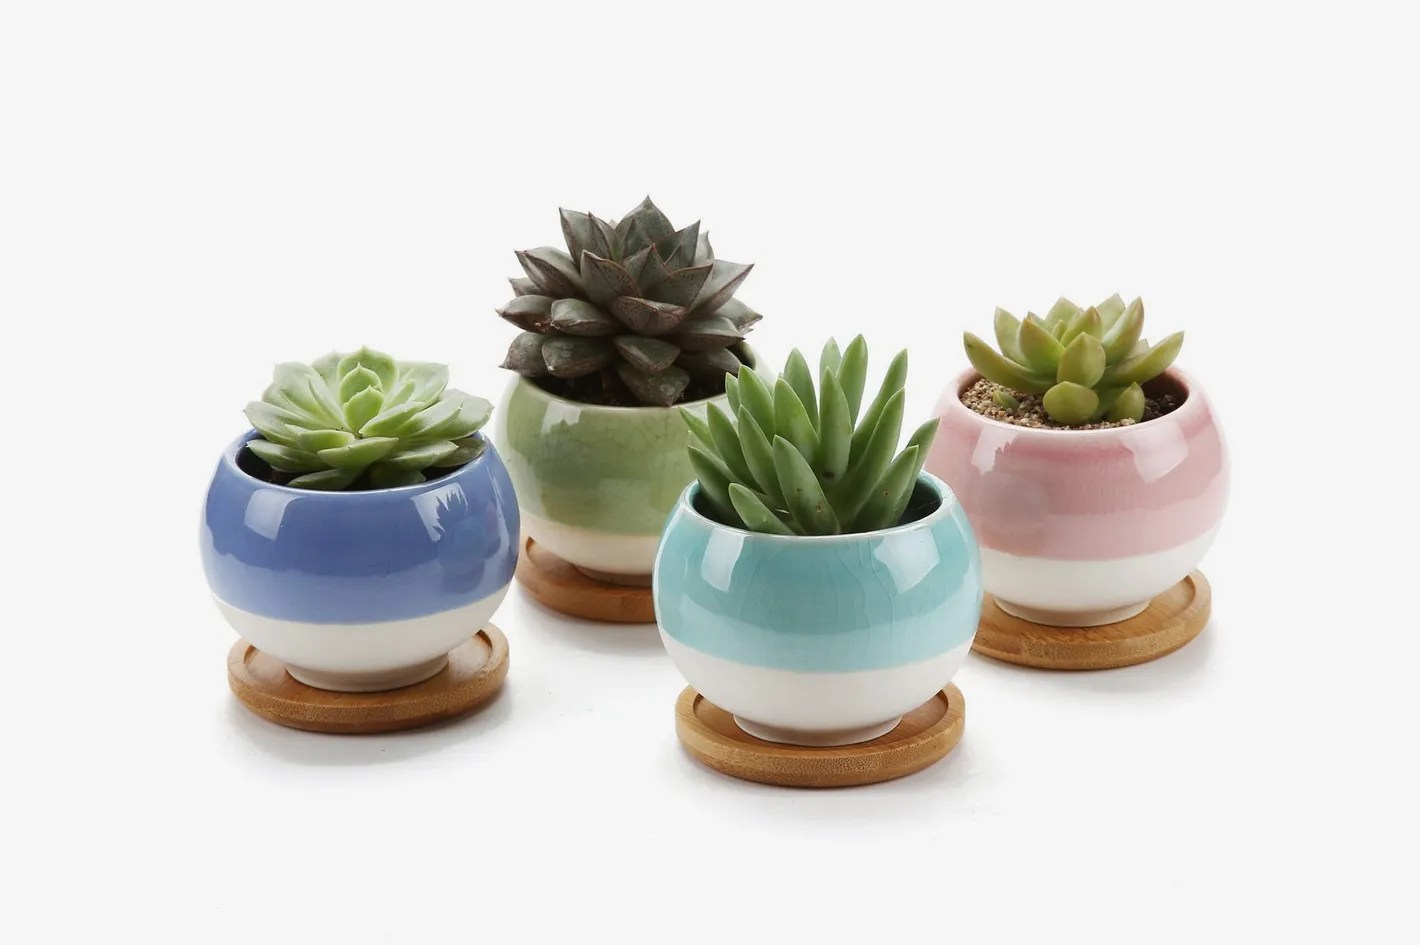 Outdoor Planters Near Me T4u Rachel S Choice 3 Inch Ball Shape Plant Pots With Bamboo Tray Set Of 4